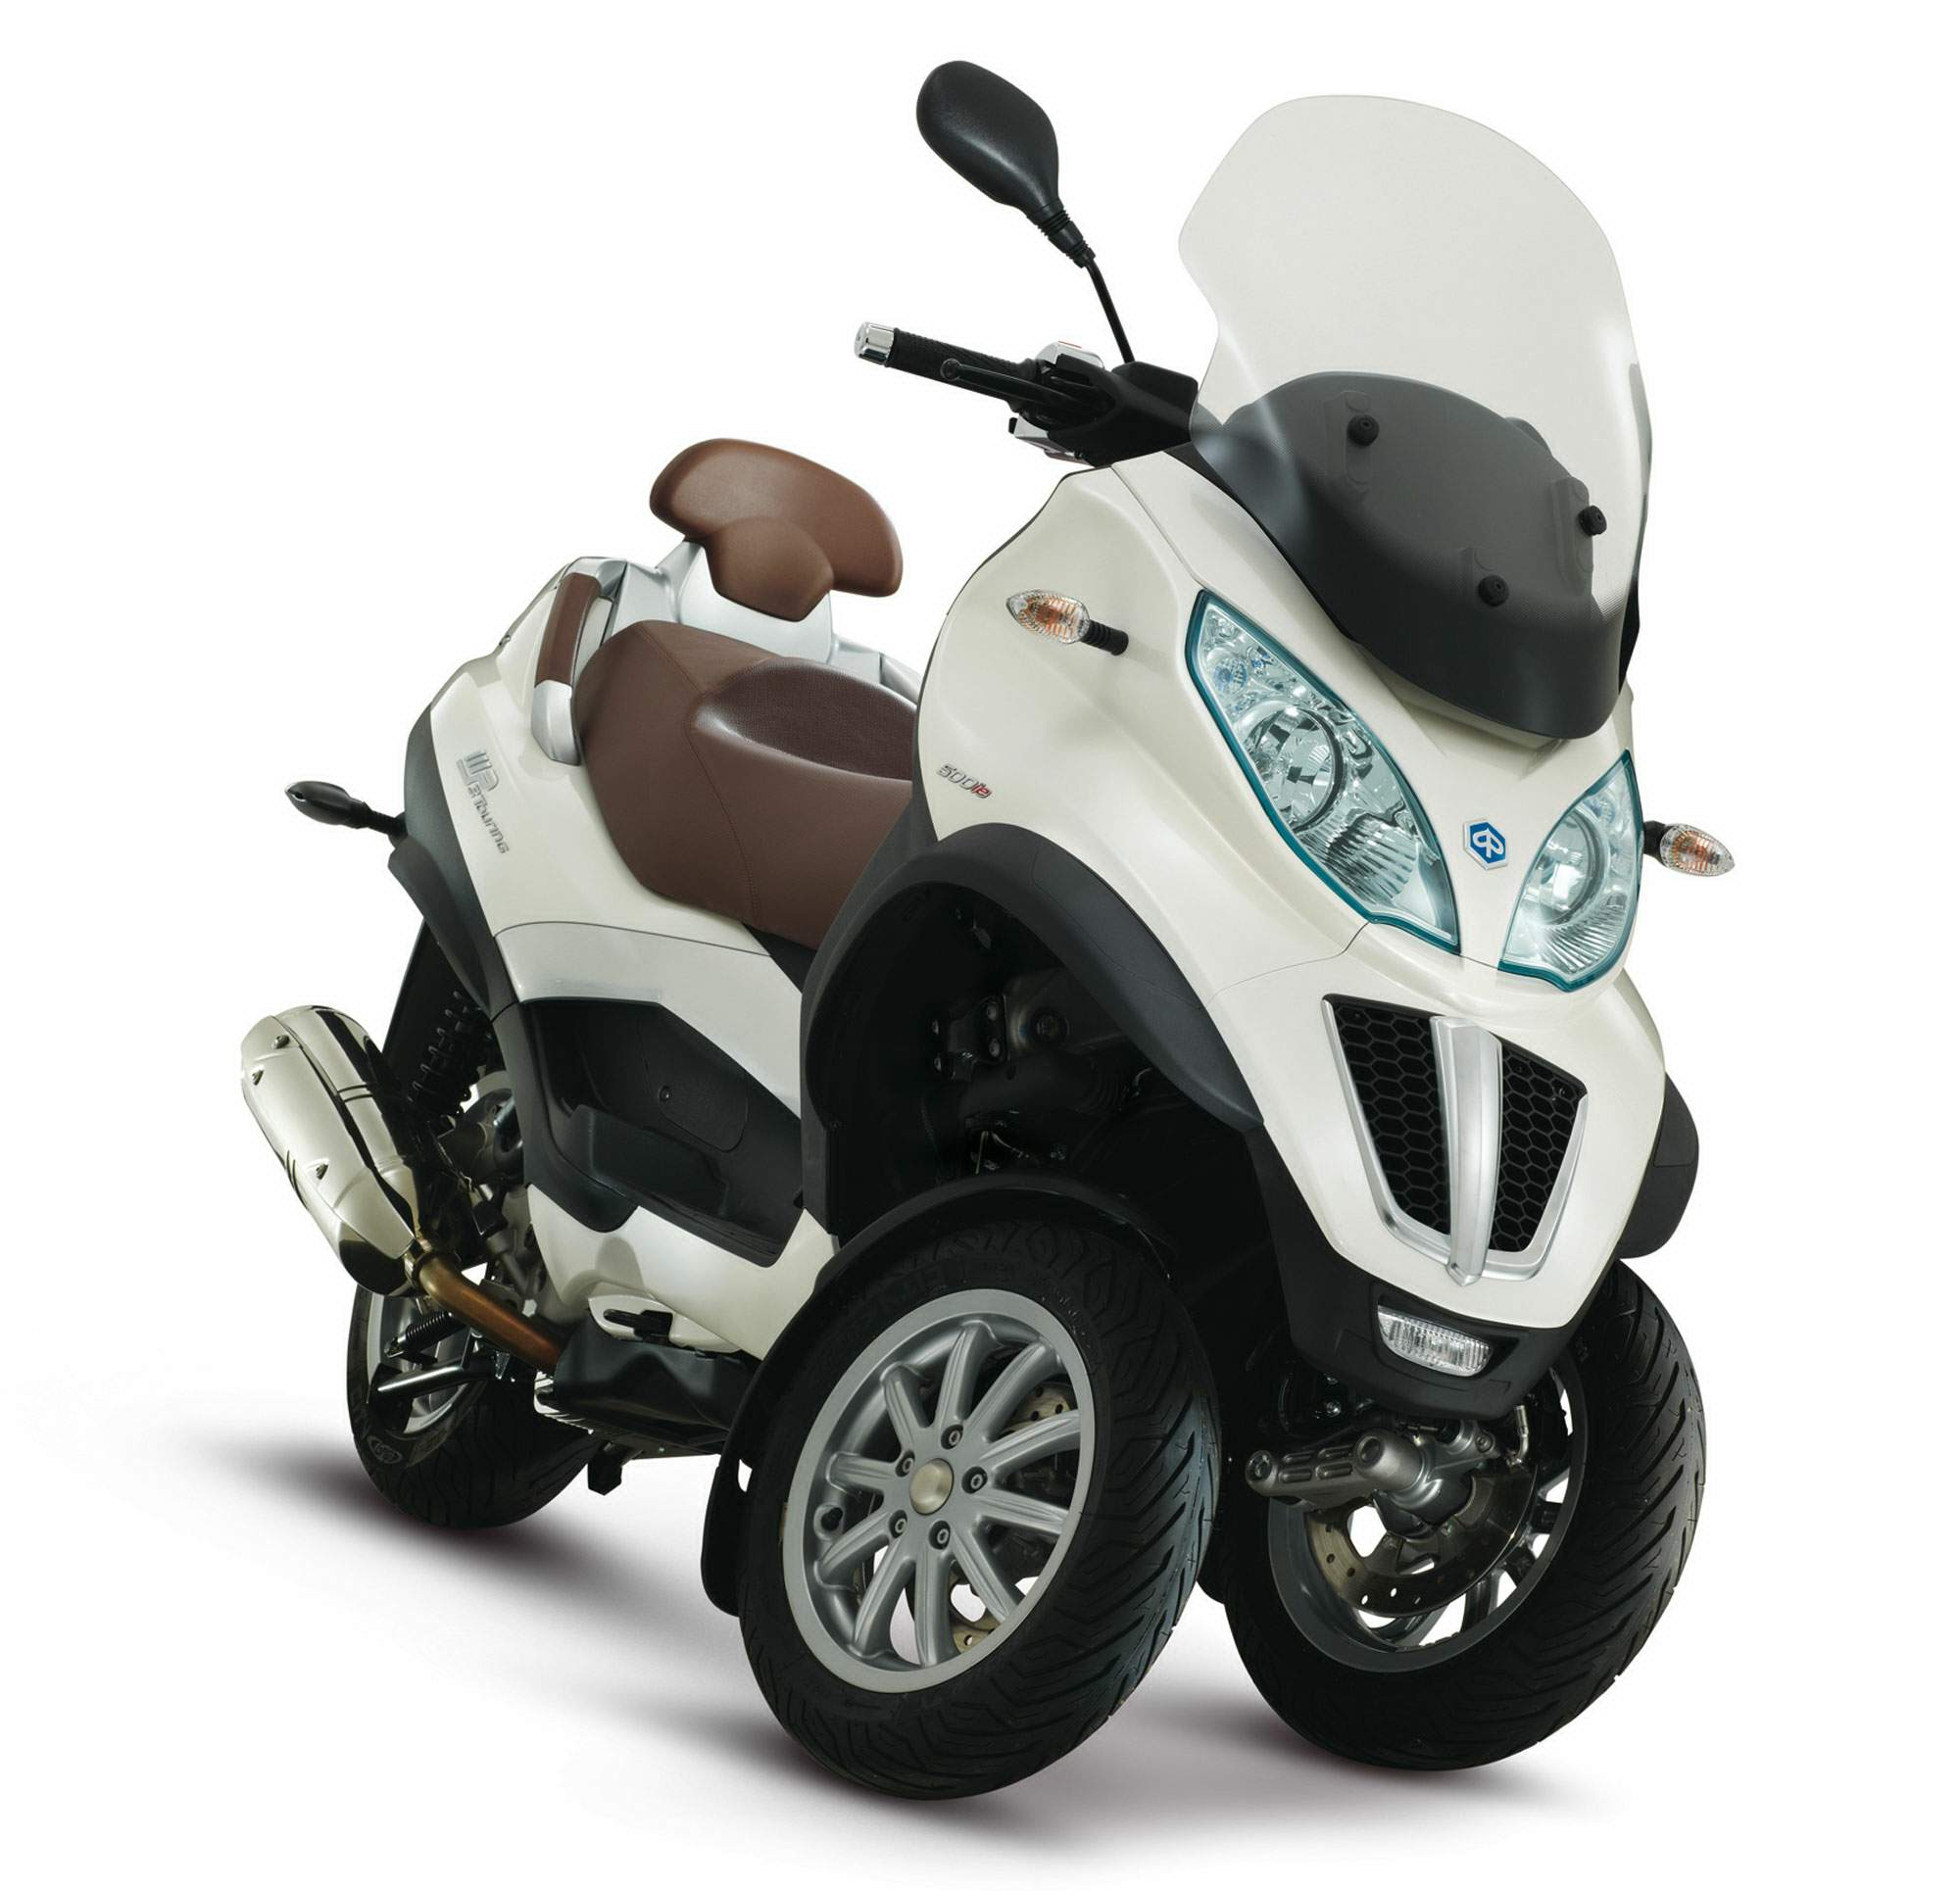 Piaggio MP3 Touring 125 2012 images #120336